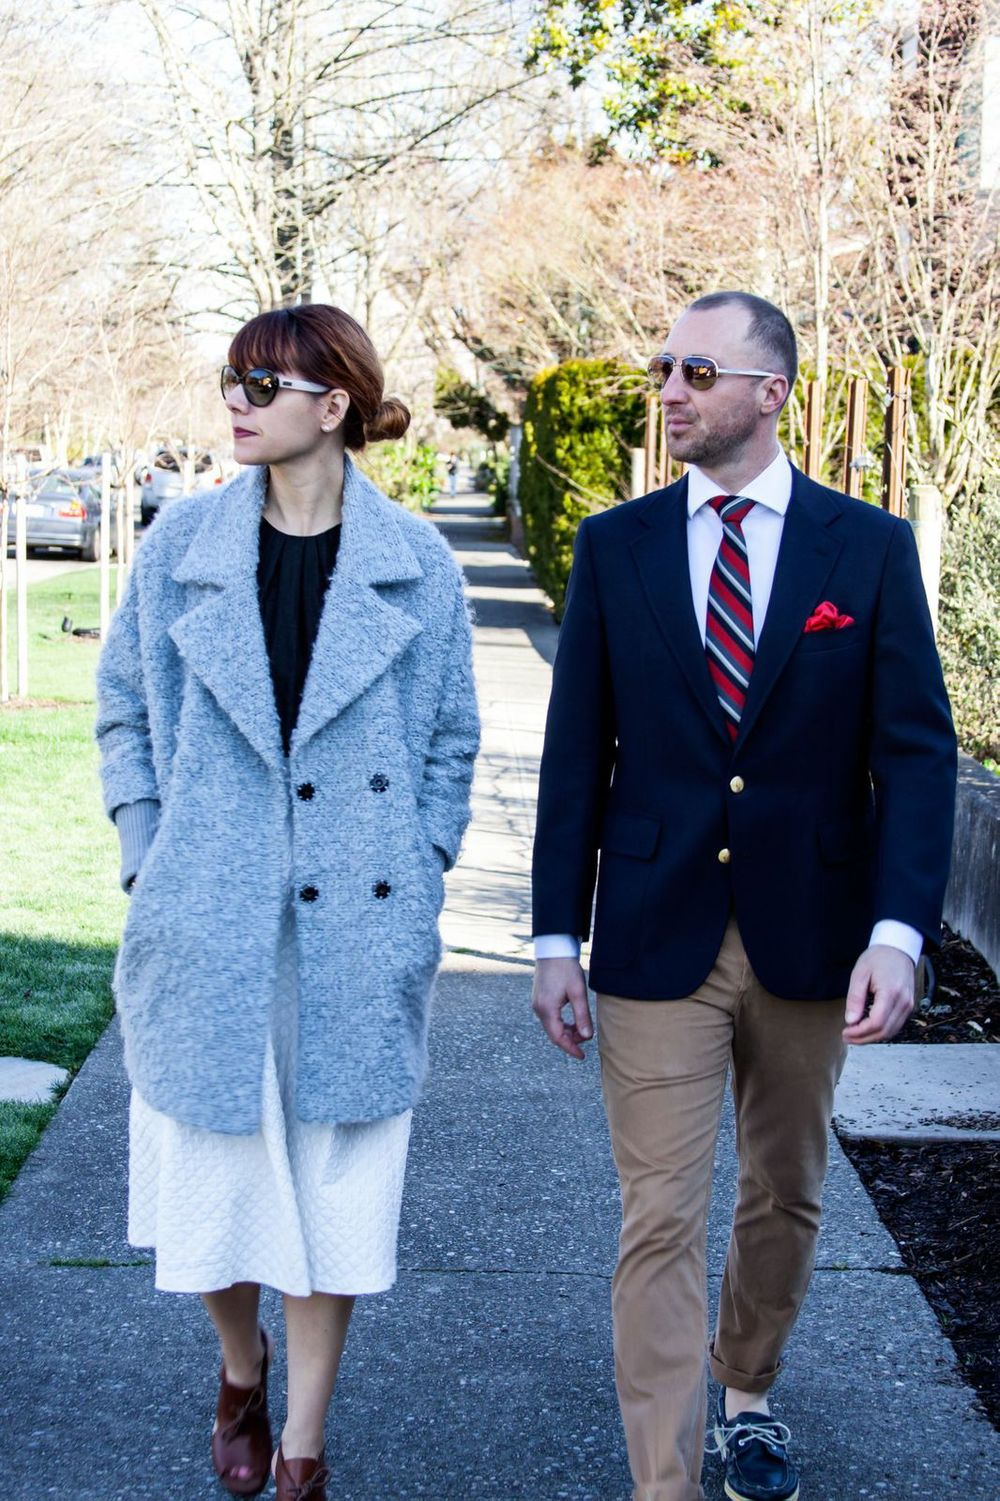 Here I am with my very stylish friend and acupuncturist, Brad Thompson. You'll learn more about him and his personal style in a future blog post. Keep your eyes peeled! And, you'll learn more about my outfit as you read the post below. Enjoy!